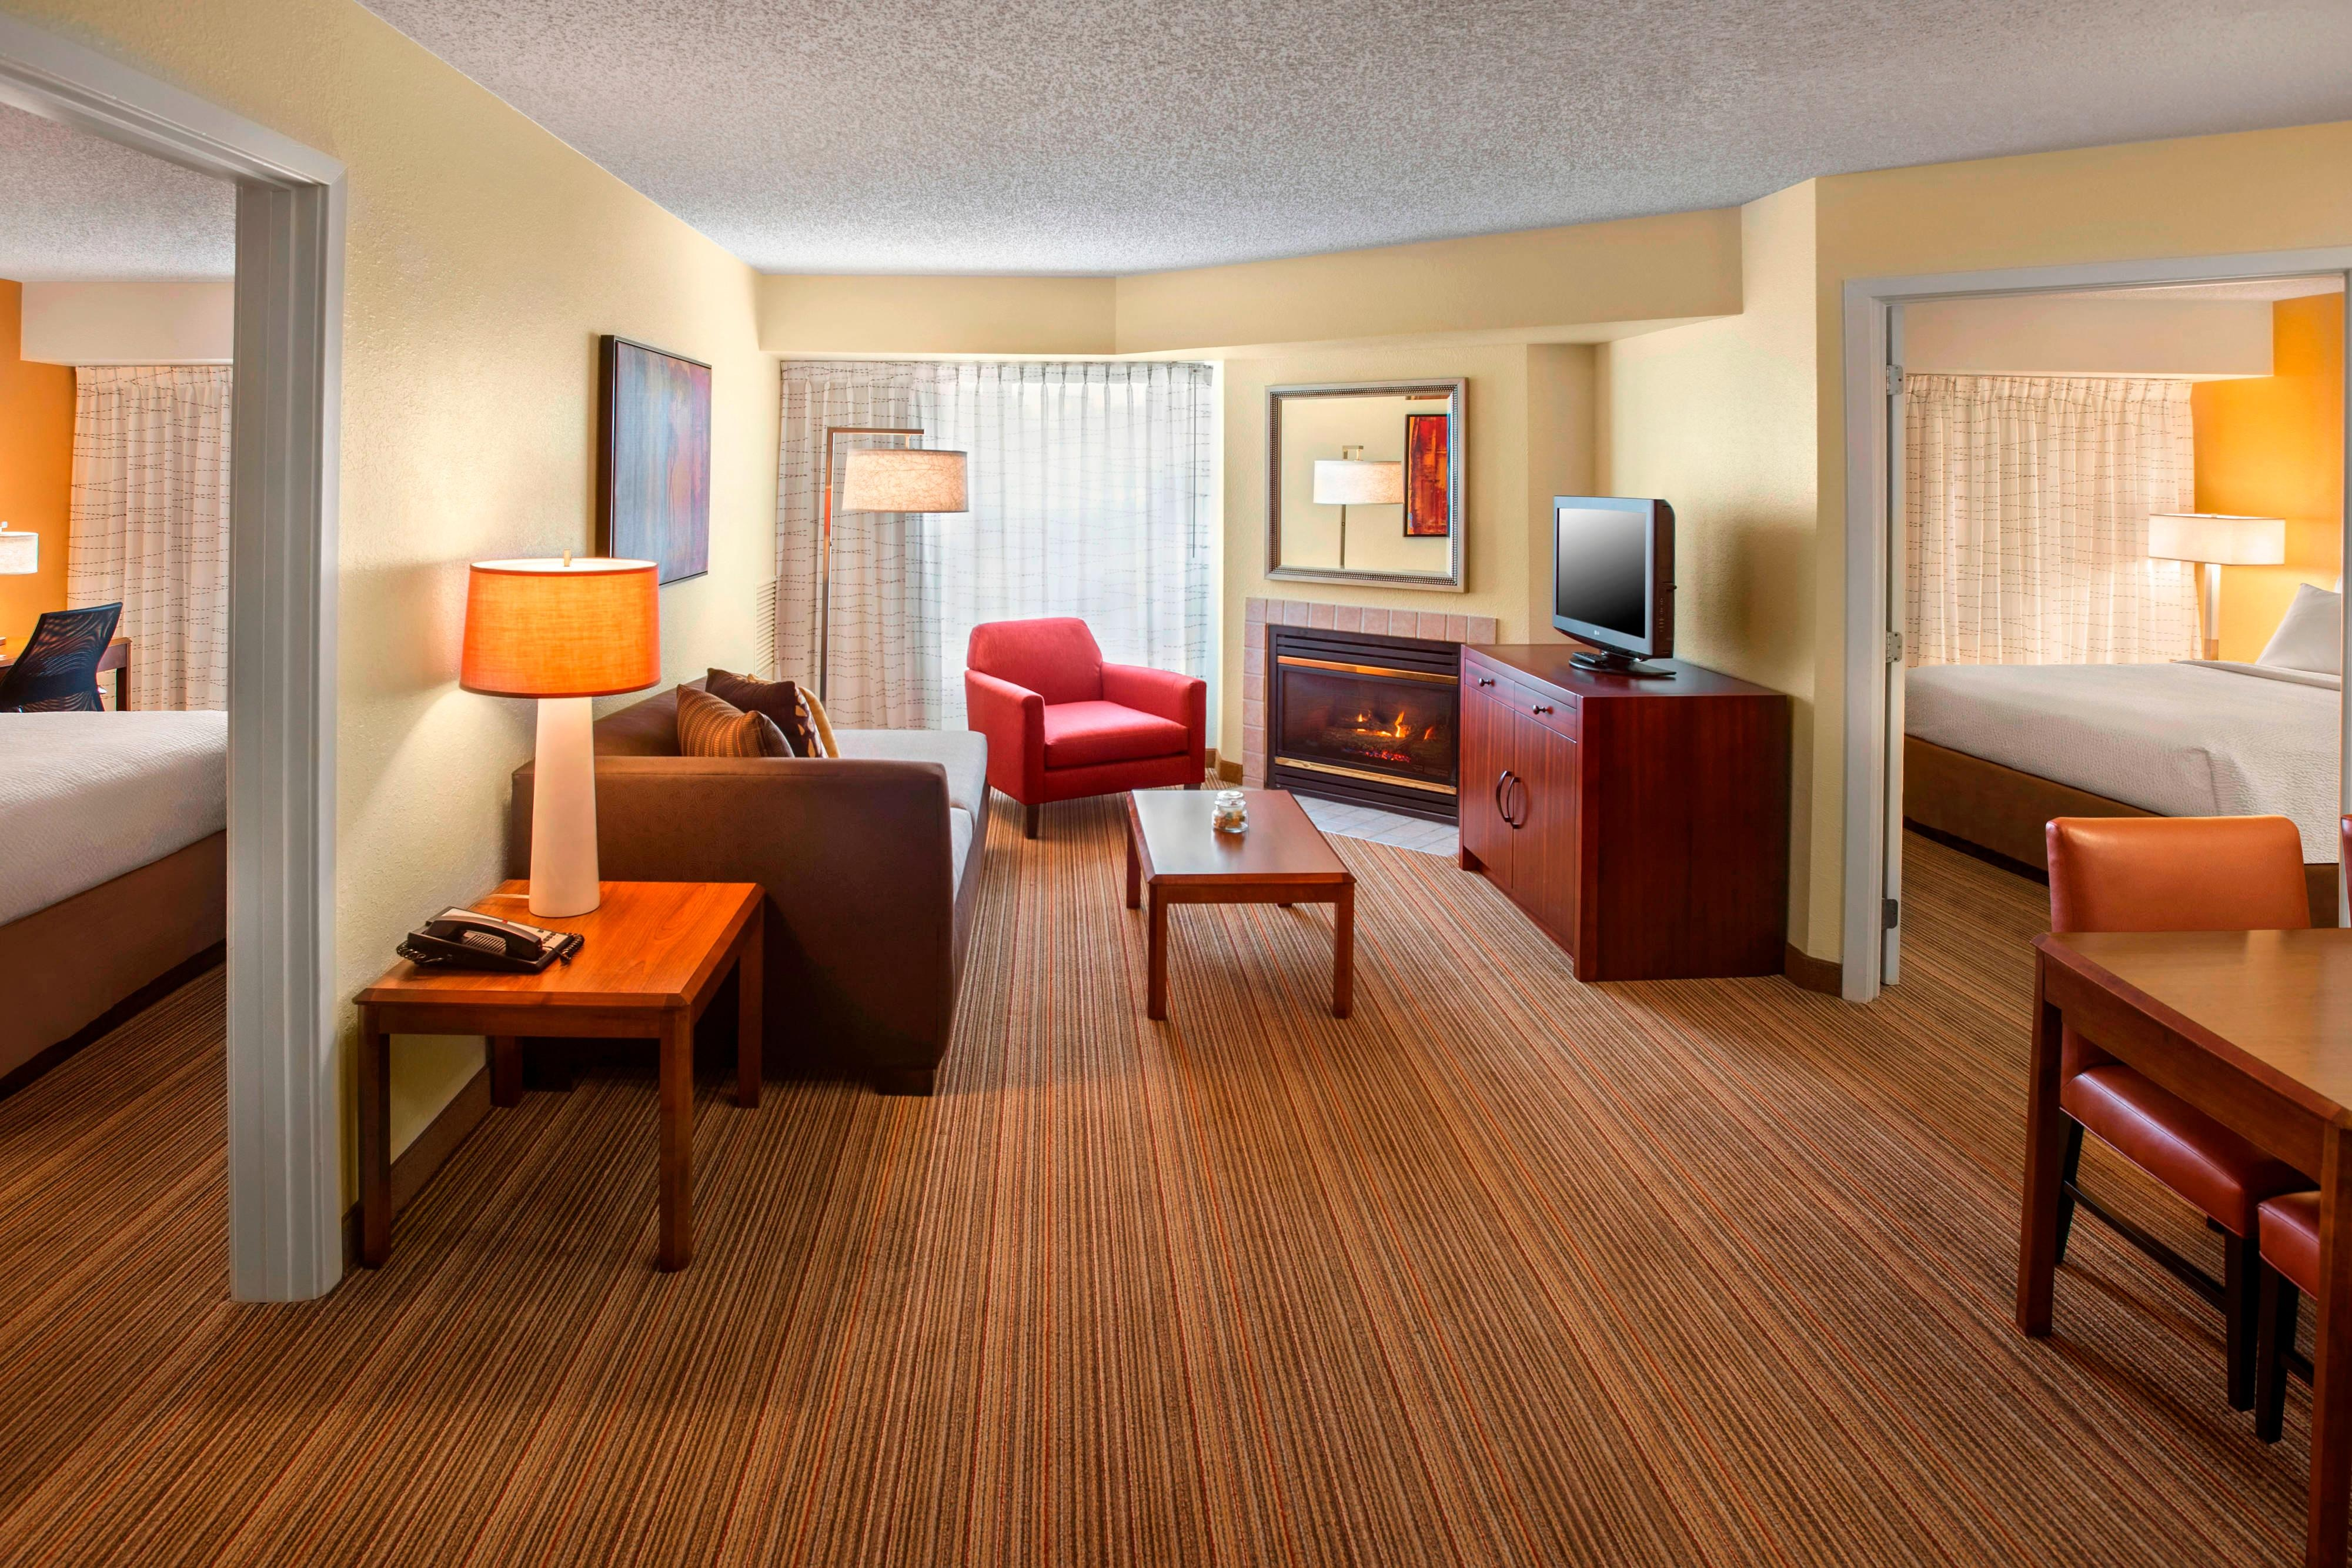 towneplace hor view hotels rooms sunnyvale suite orleans in hotel clsc bedroom mountain sjcss suites amenities new